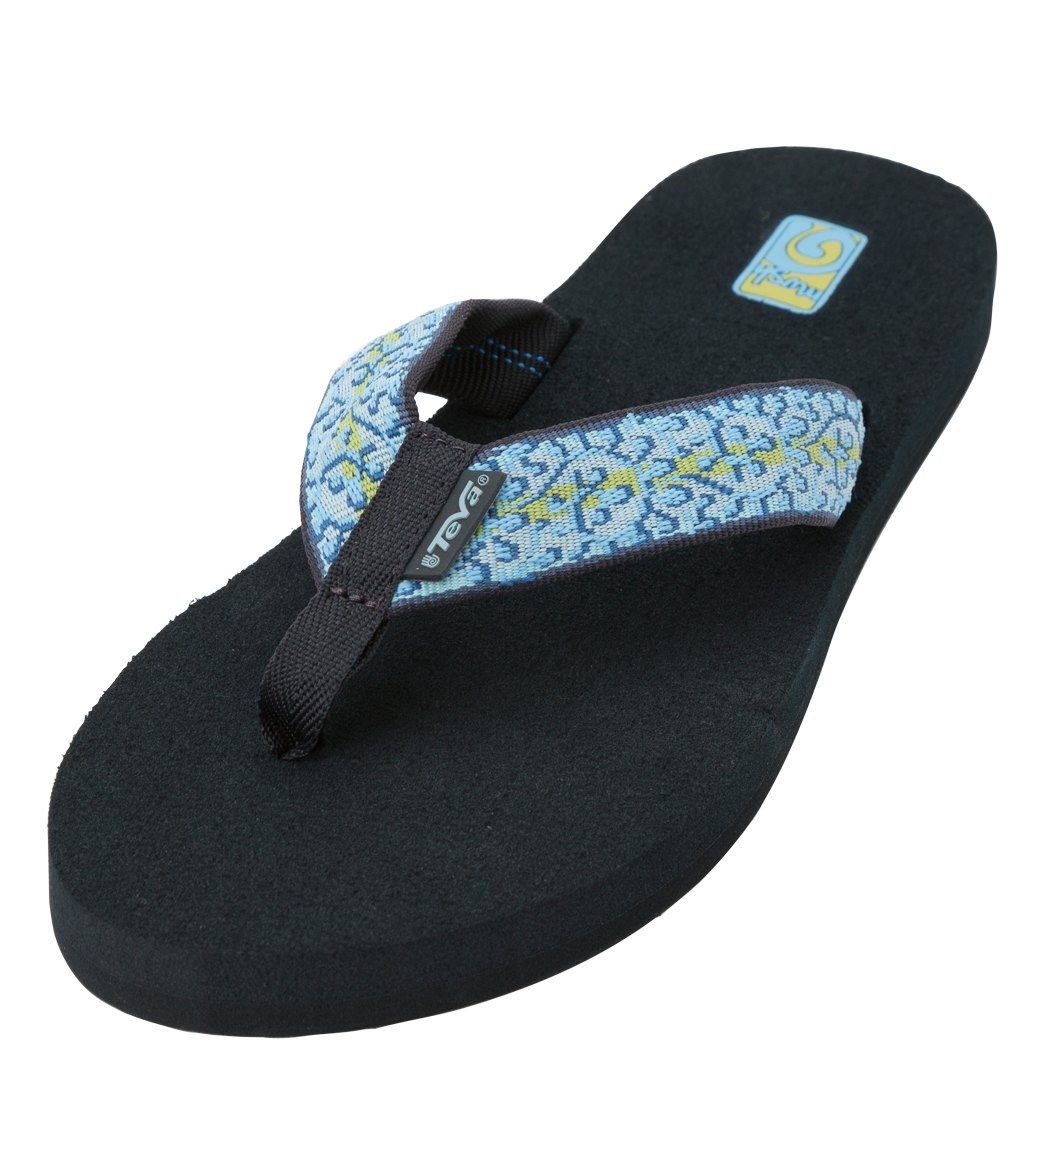 fdd15d770fbf Teva Women s Mush II Flip Flop at SwimOutlet.com